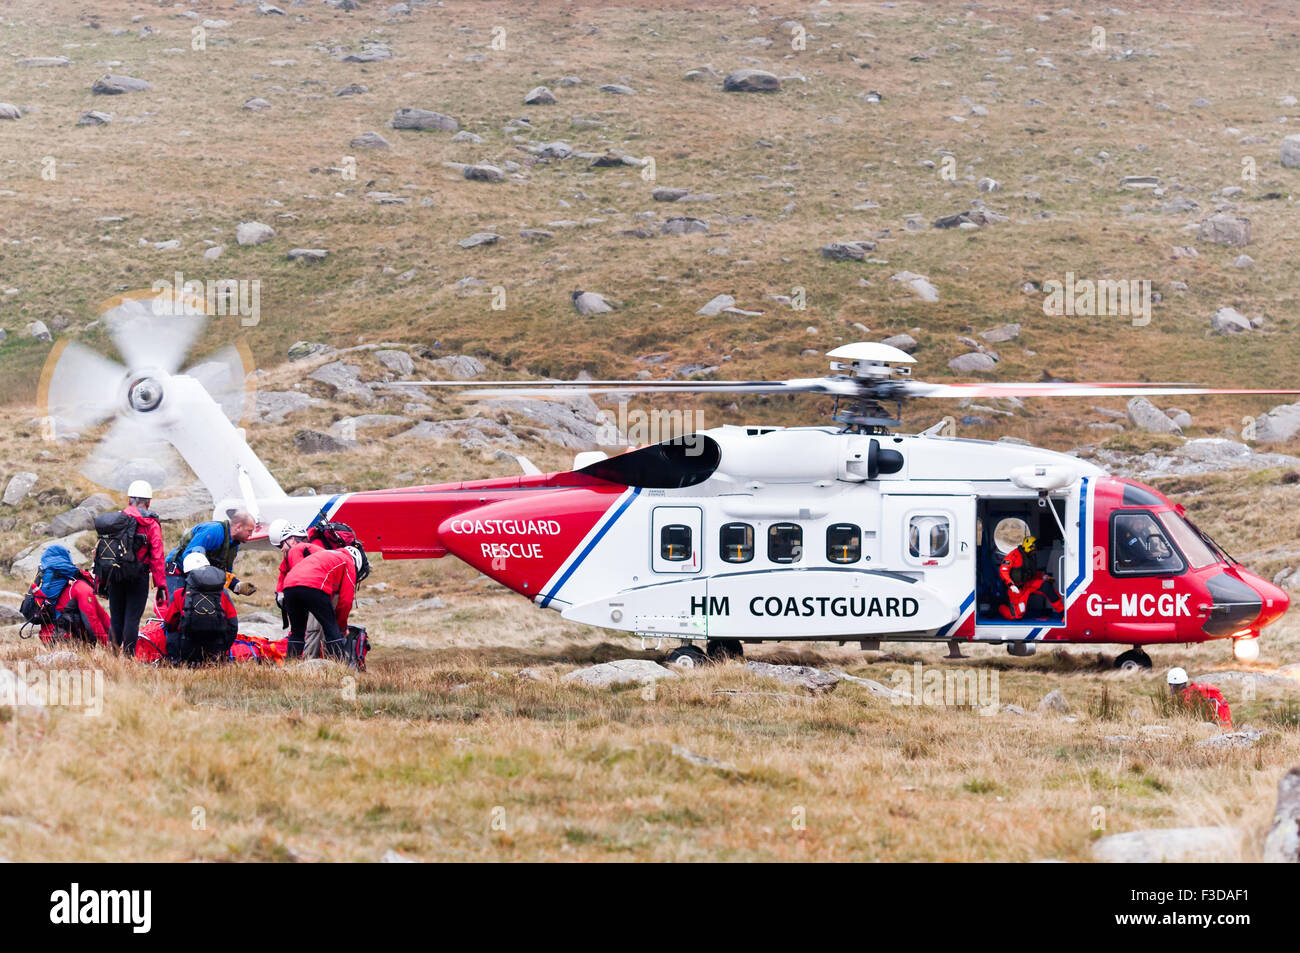 As dusk falls, Ogwen Valley Mountain Rescue Organisation prepare to take a casualty to the Coastguard Rescue Helicopter - Stock Image